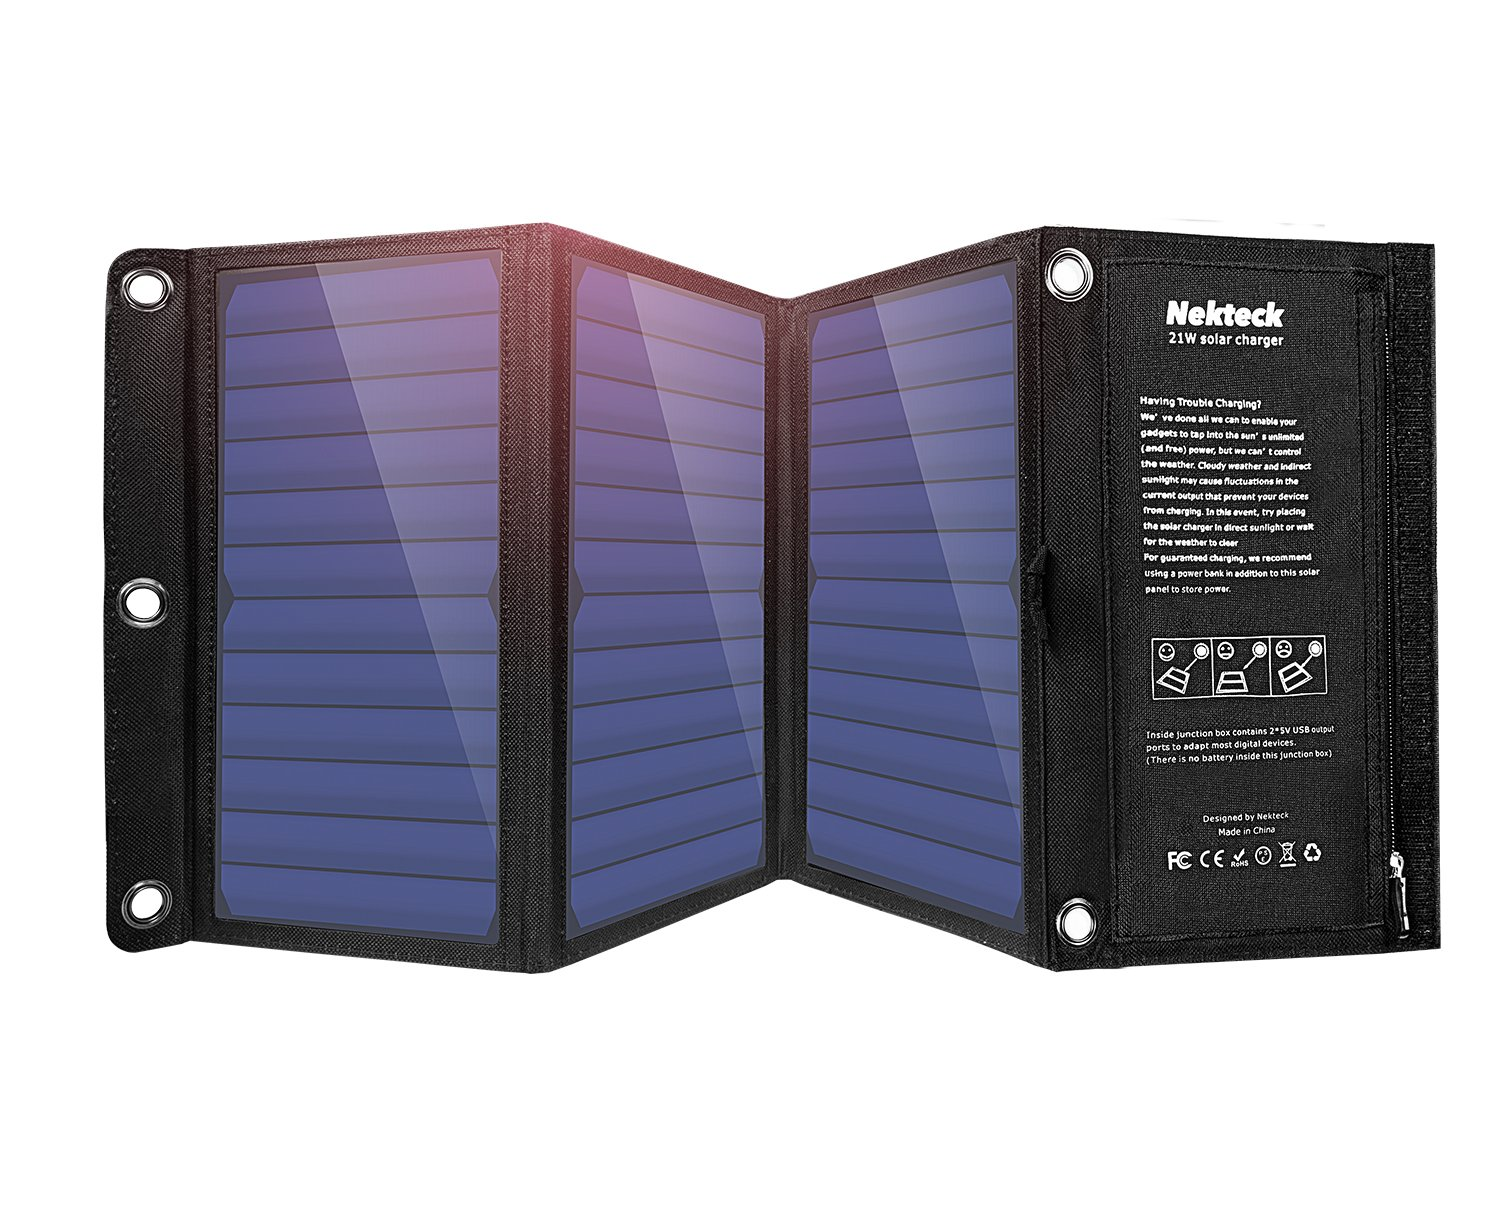 Nekteck 21W Solar Charger with 2-Port USB Charger Build with High Efficiency Solar Panel Cell for iPhone 6s / 6 / Plus, SE, iPad, Galaxy S6/S7/ Edge/Plus, Nexus 5X/6P, Any USB Devices, and More